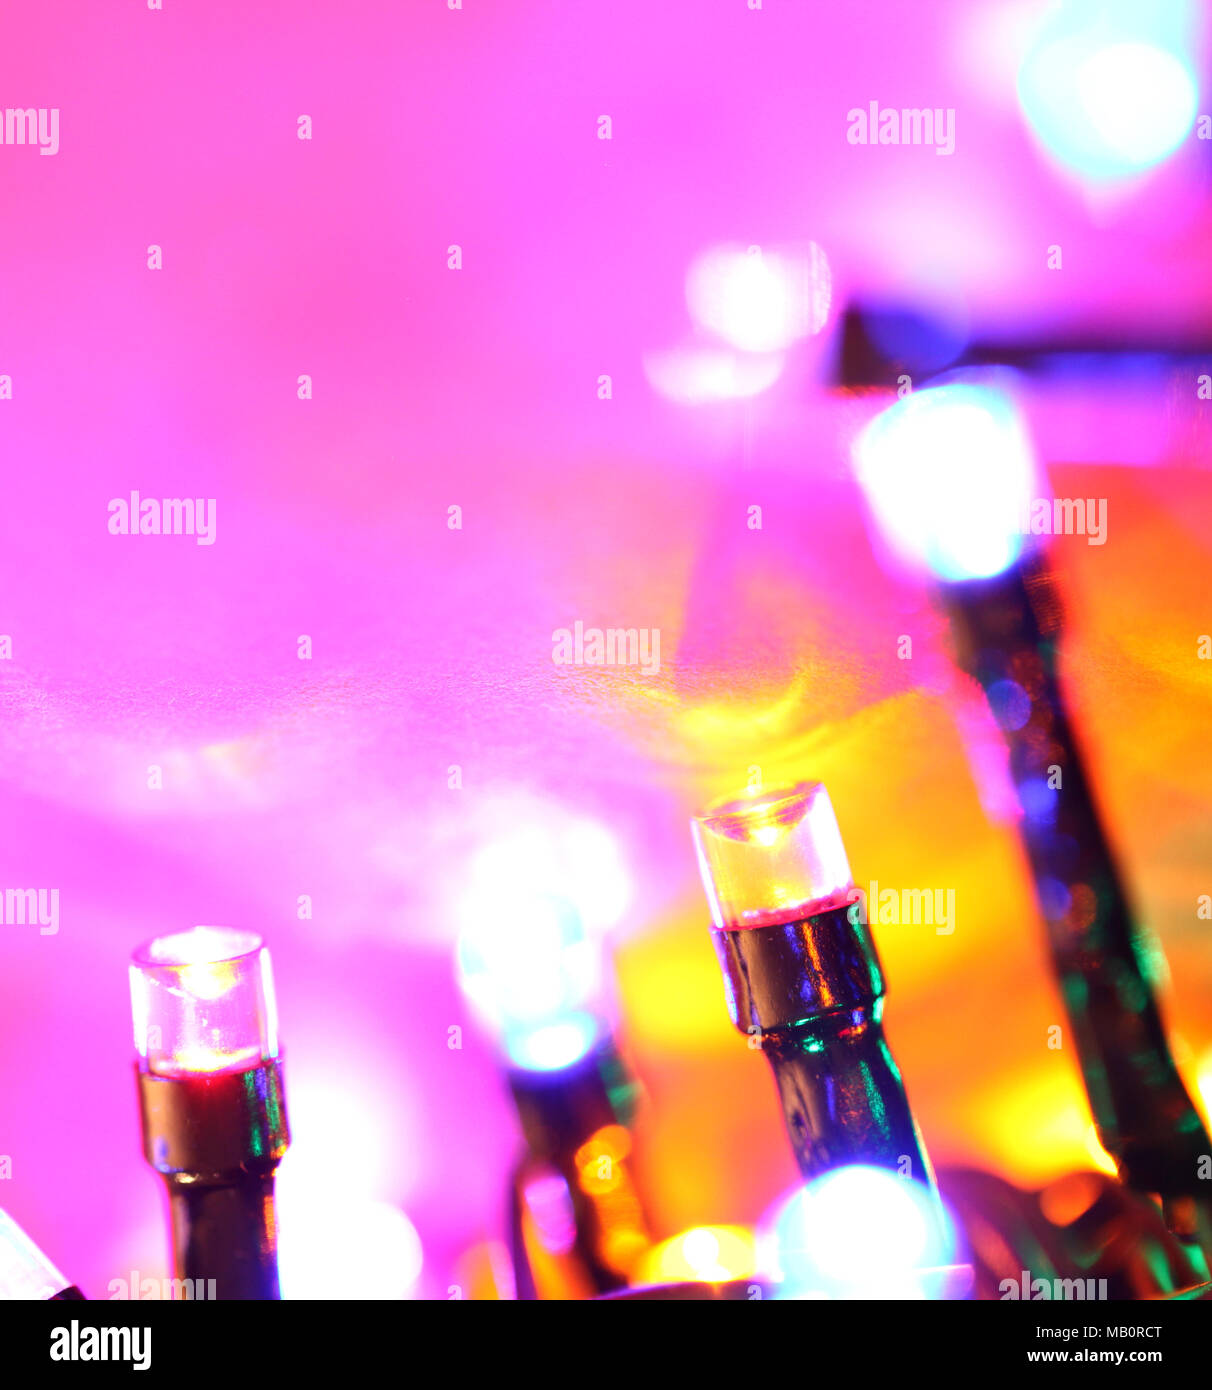 Bulbs Close Blinking Up Of Led Alamy Stock Photo178883288 mN8vwn0